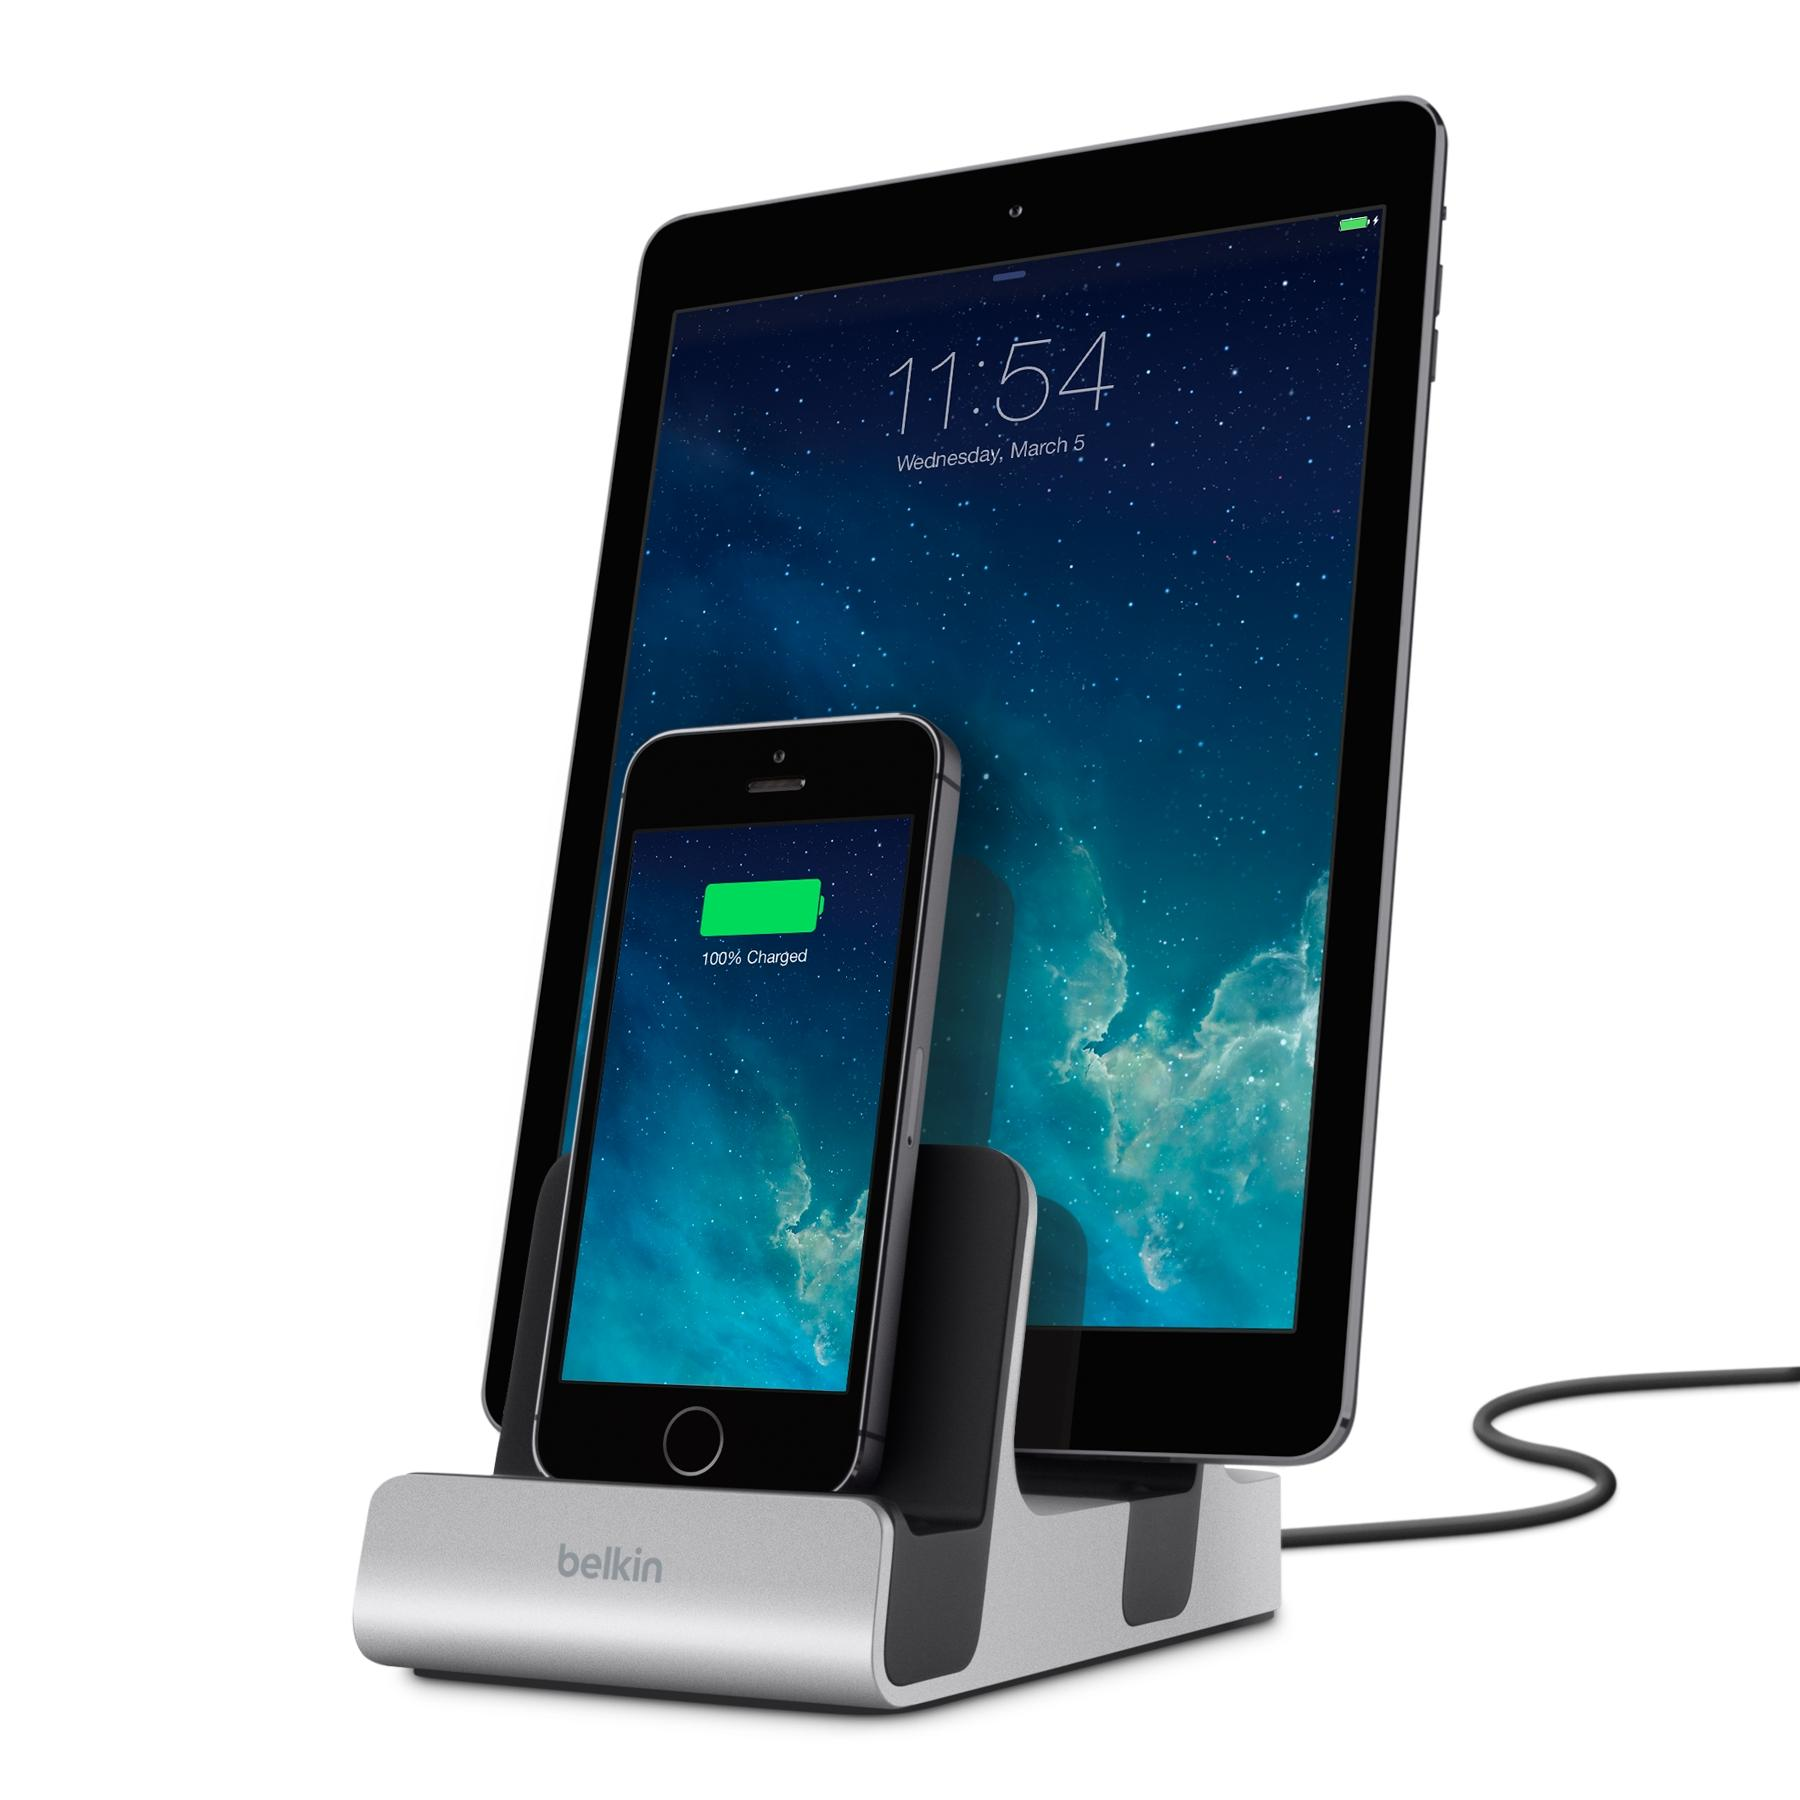 belkin dual lightning charging dock mfi approved for. Black Bedroom Furniture Sets. Home Design Ideas